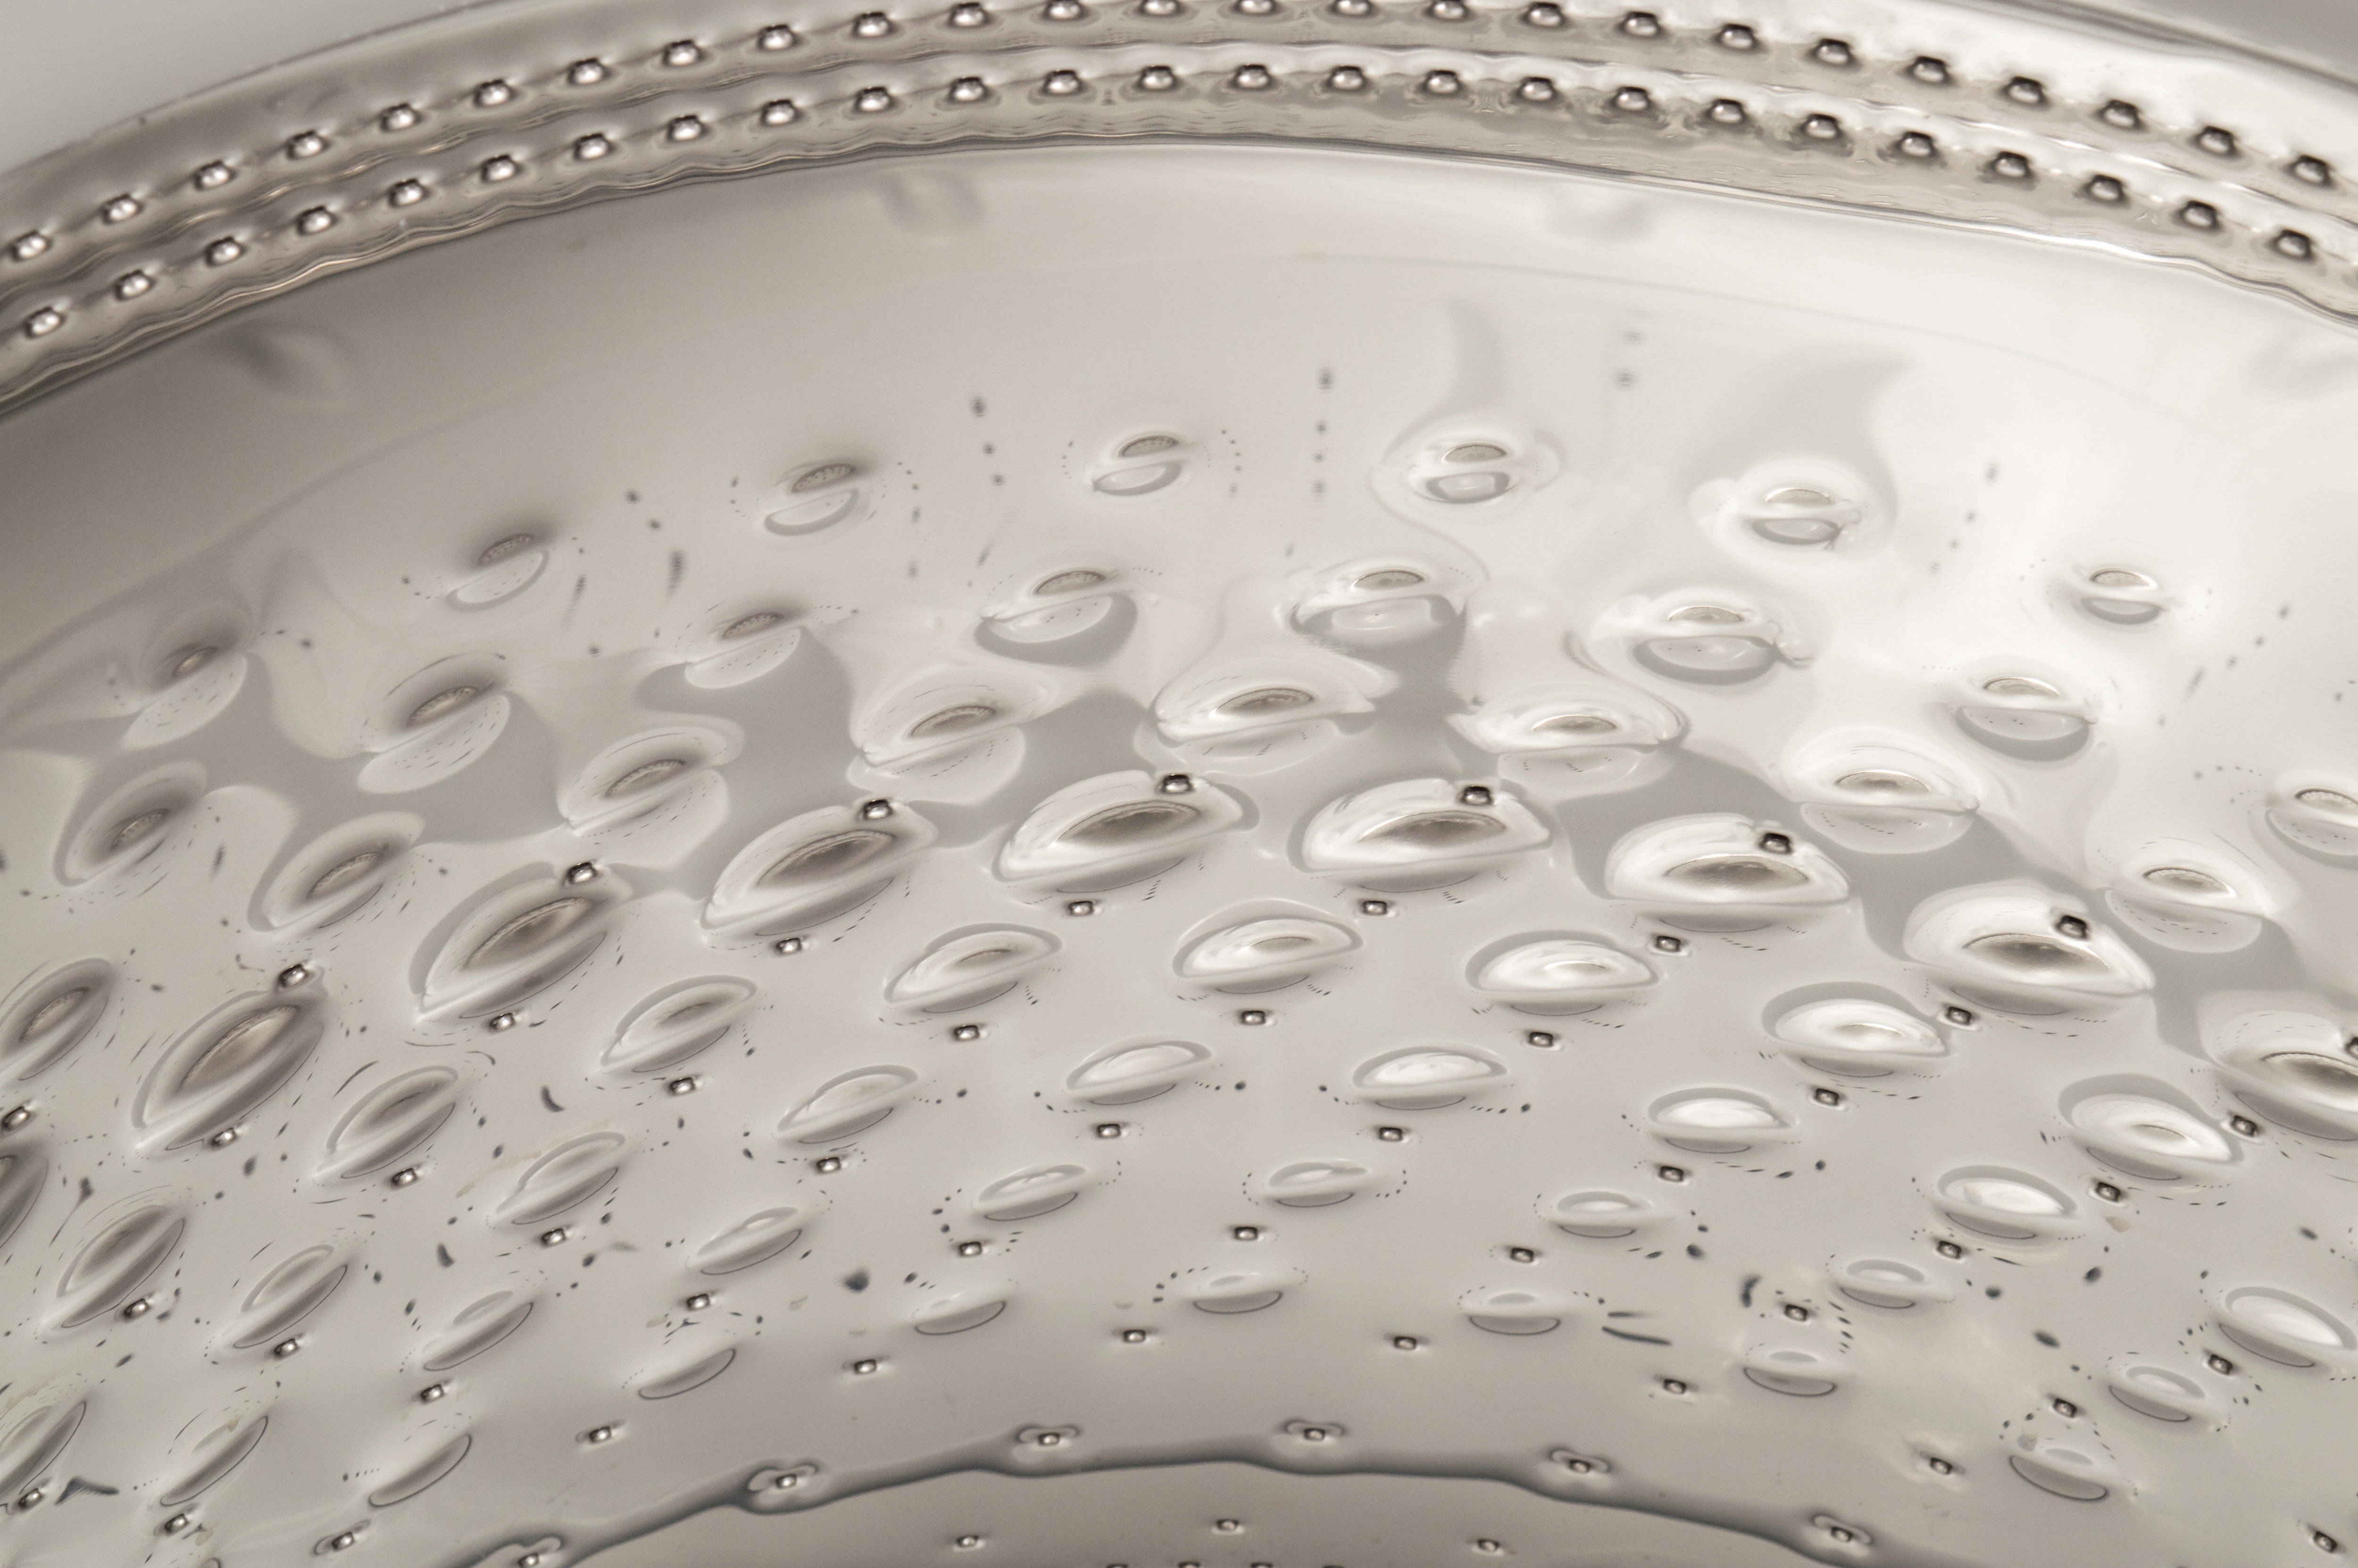 The steel bubbles help wash your clothes without destroying them.